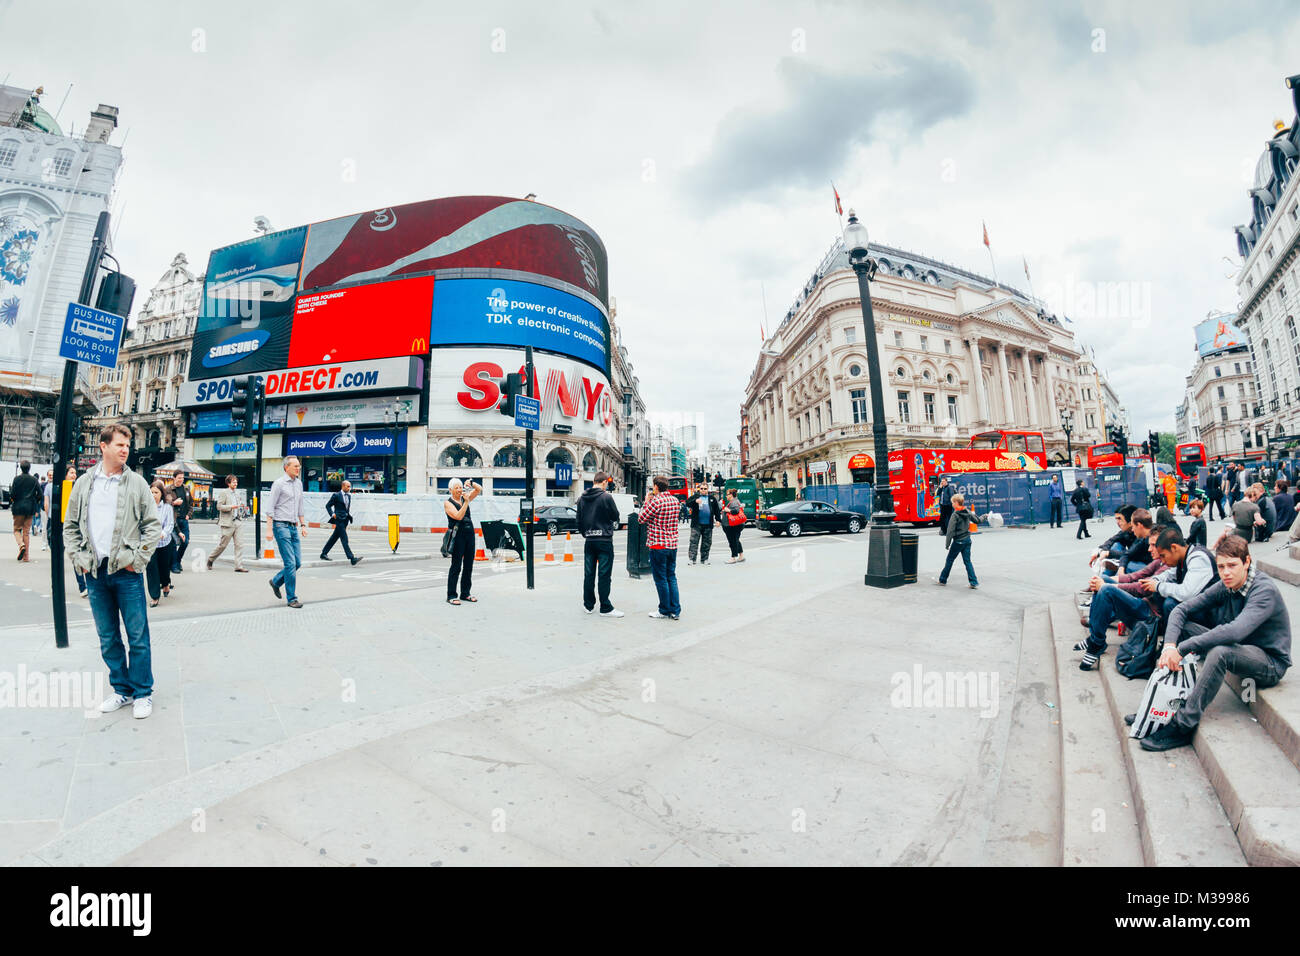 LONDON - OCTOBER 11 View of Piccadilly Circus on October 11, 2013 in London. Famous advertisements of TDK and Sanyo - Stock Image